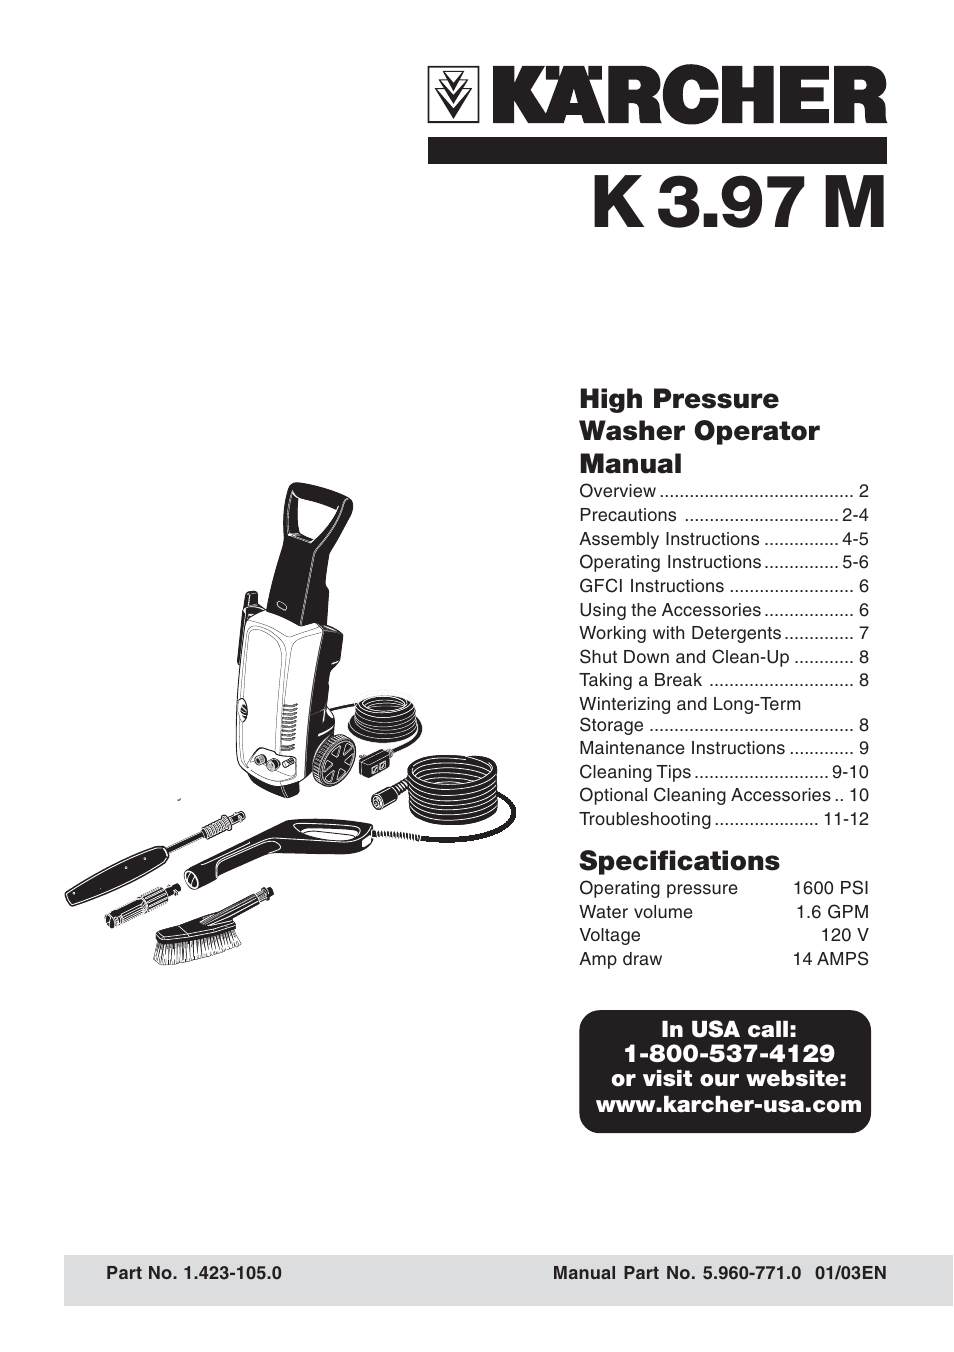 karcher k 3 97 m user manual 12 pages rh manualsdir com karcher high pressure washer service manual karcher pressure washer service manual pdf